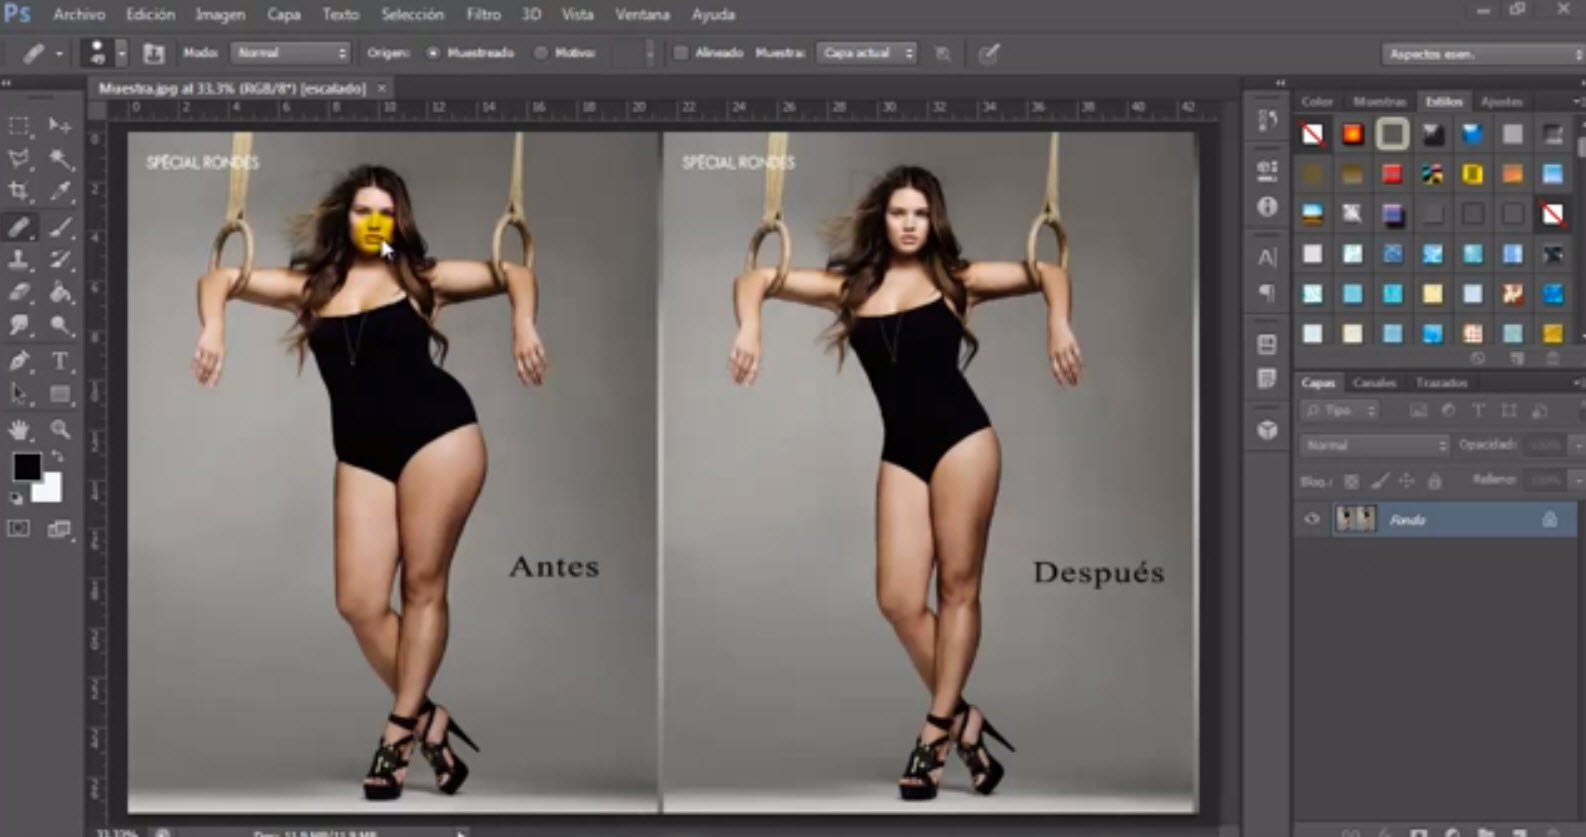 6 Tutoriales interesantes para Photoshop